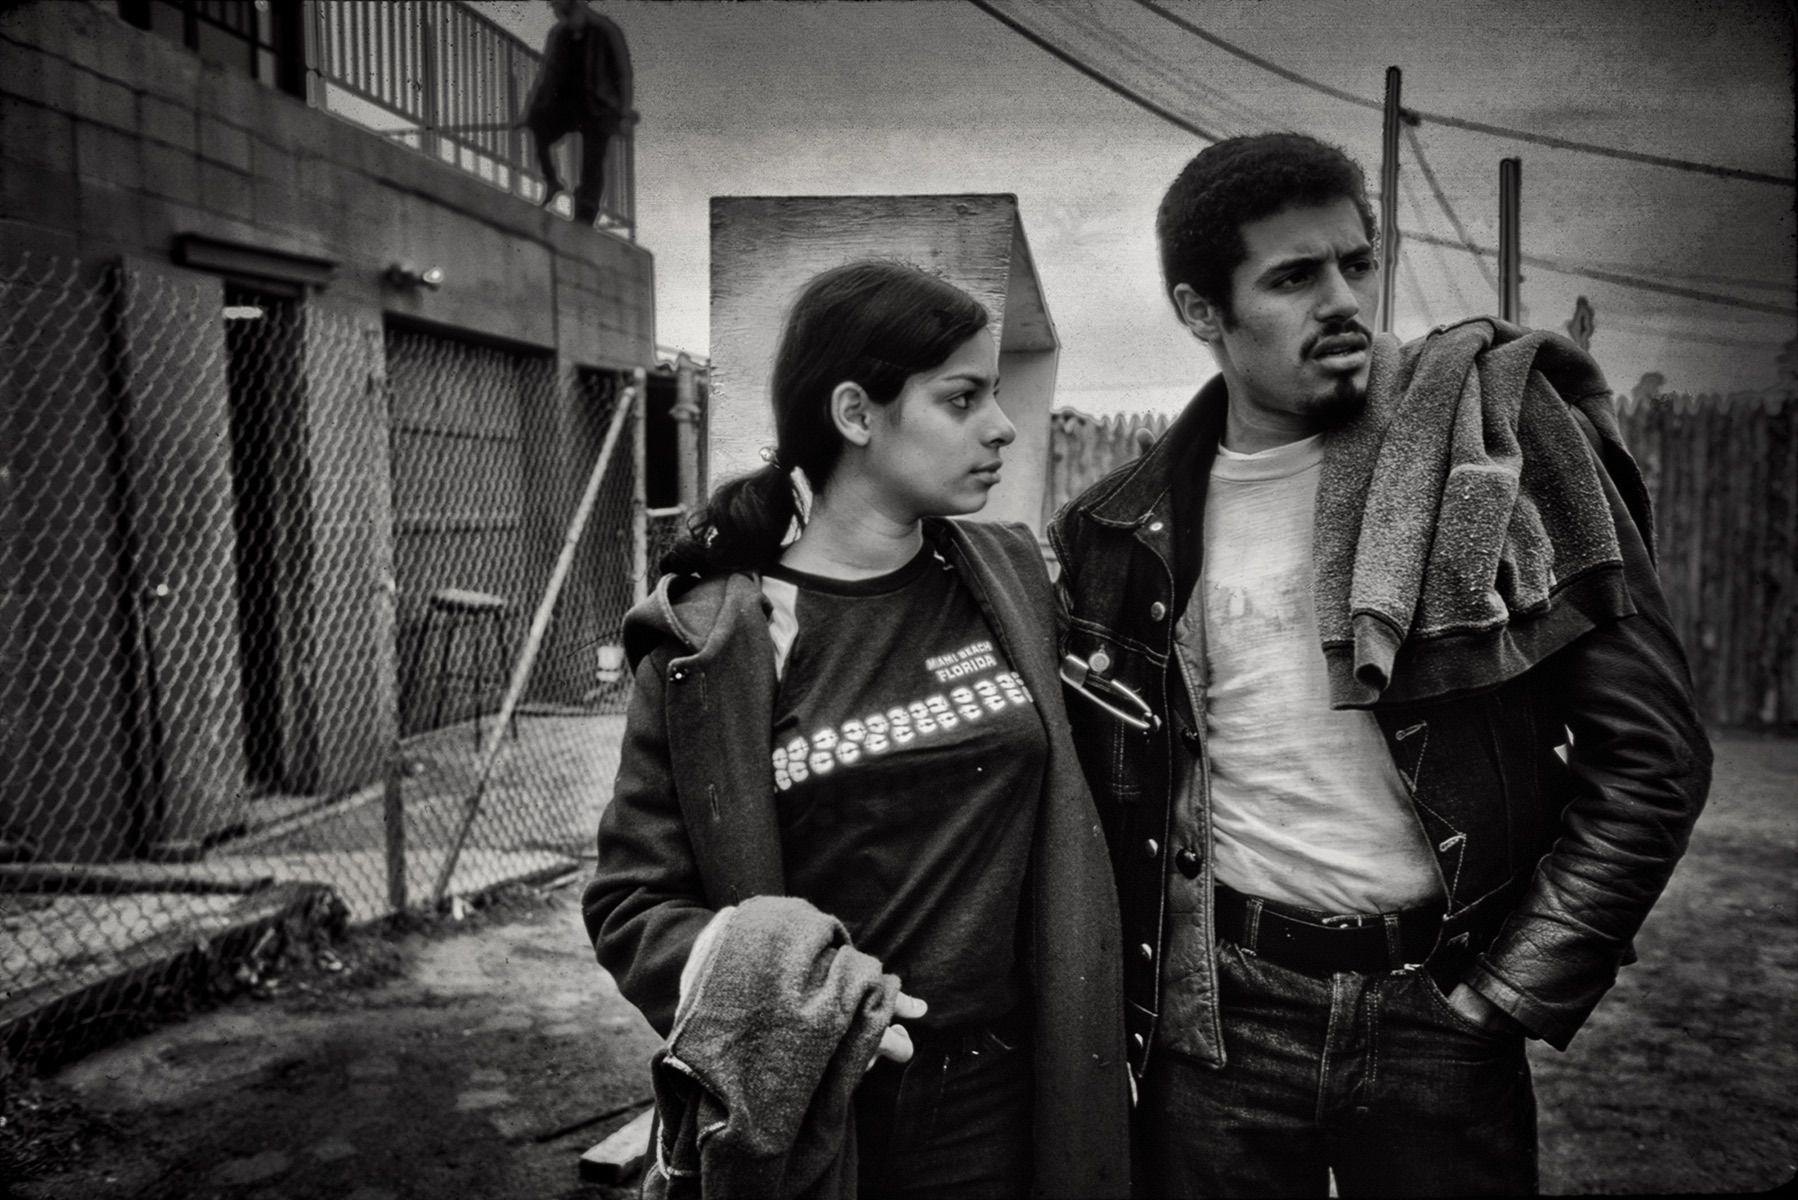 """Eddie Cuevas, president of the Reapers street gang, with his girlfriend Yvette."""